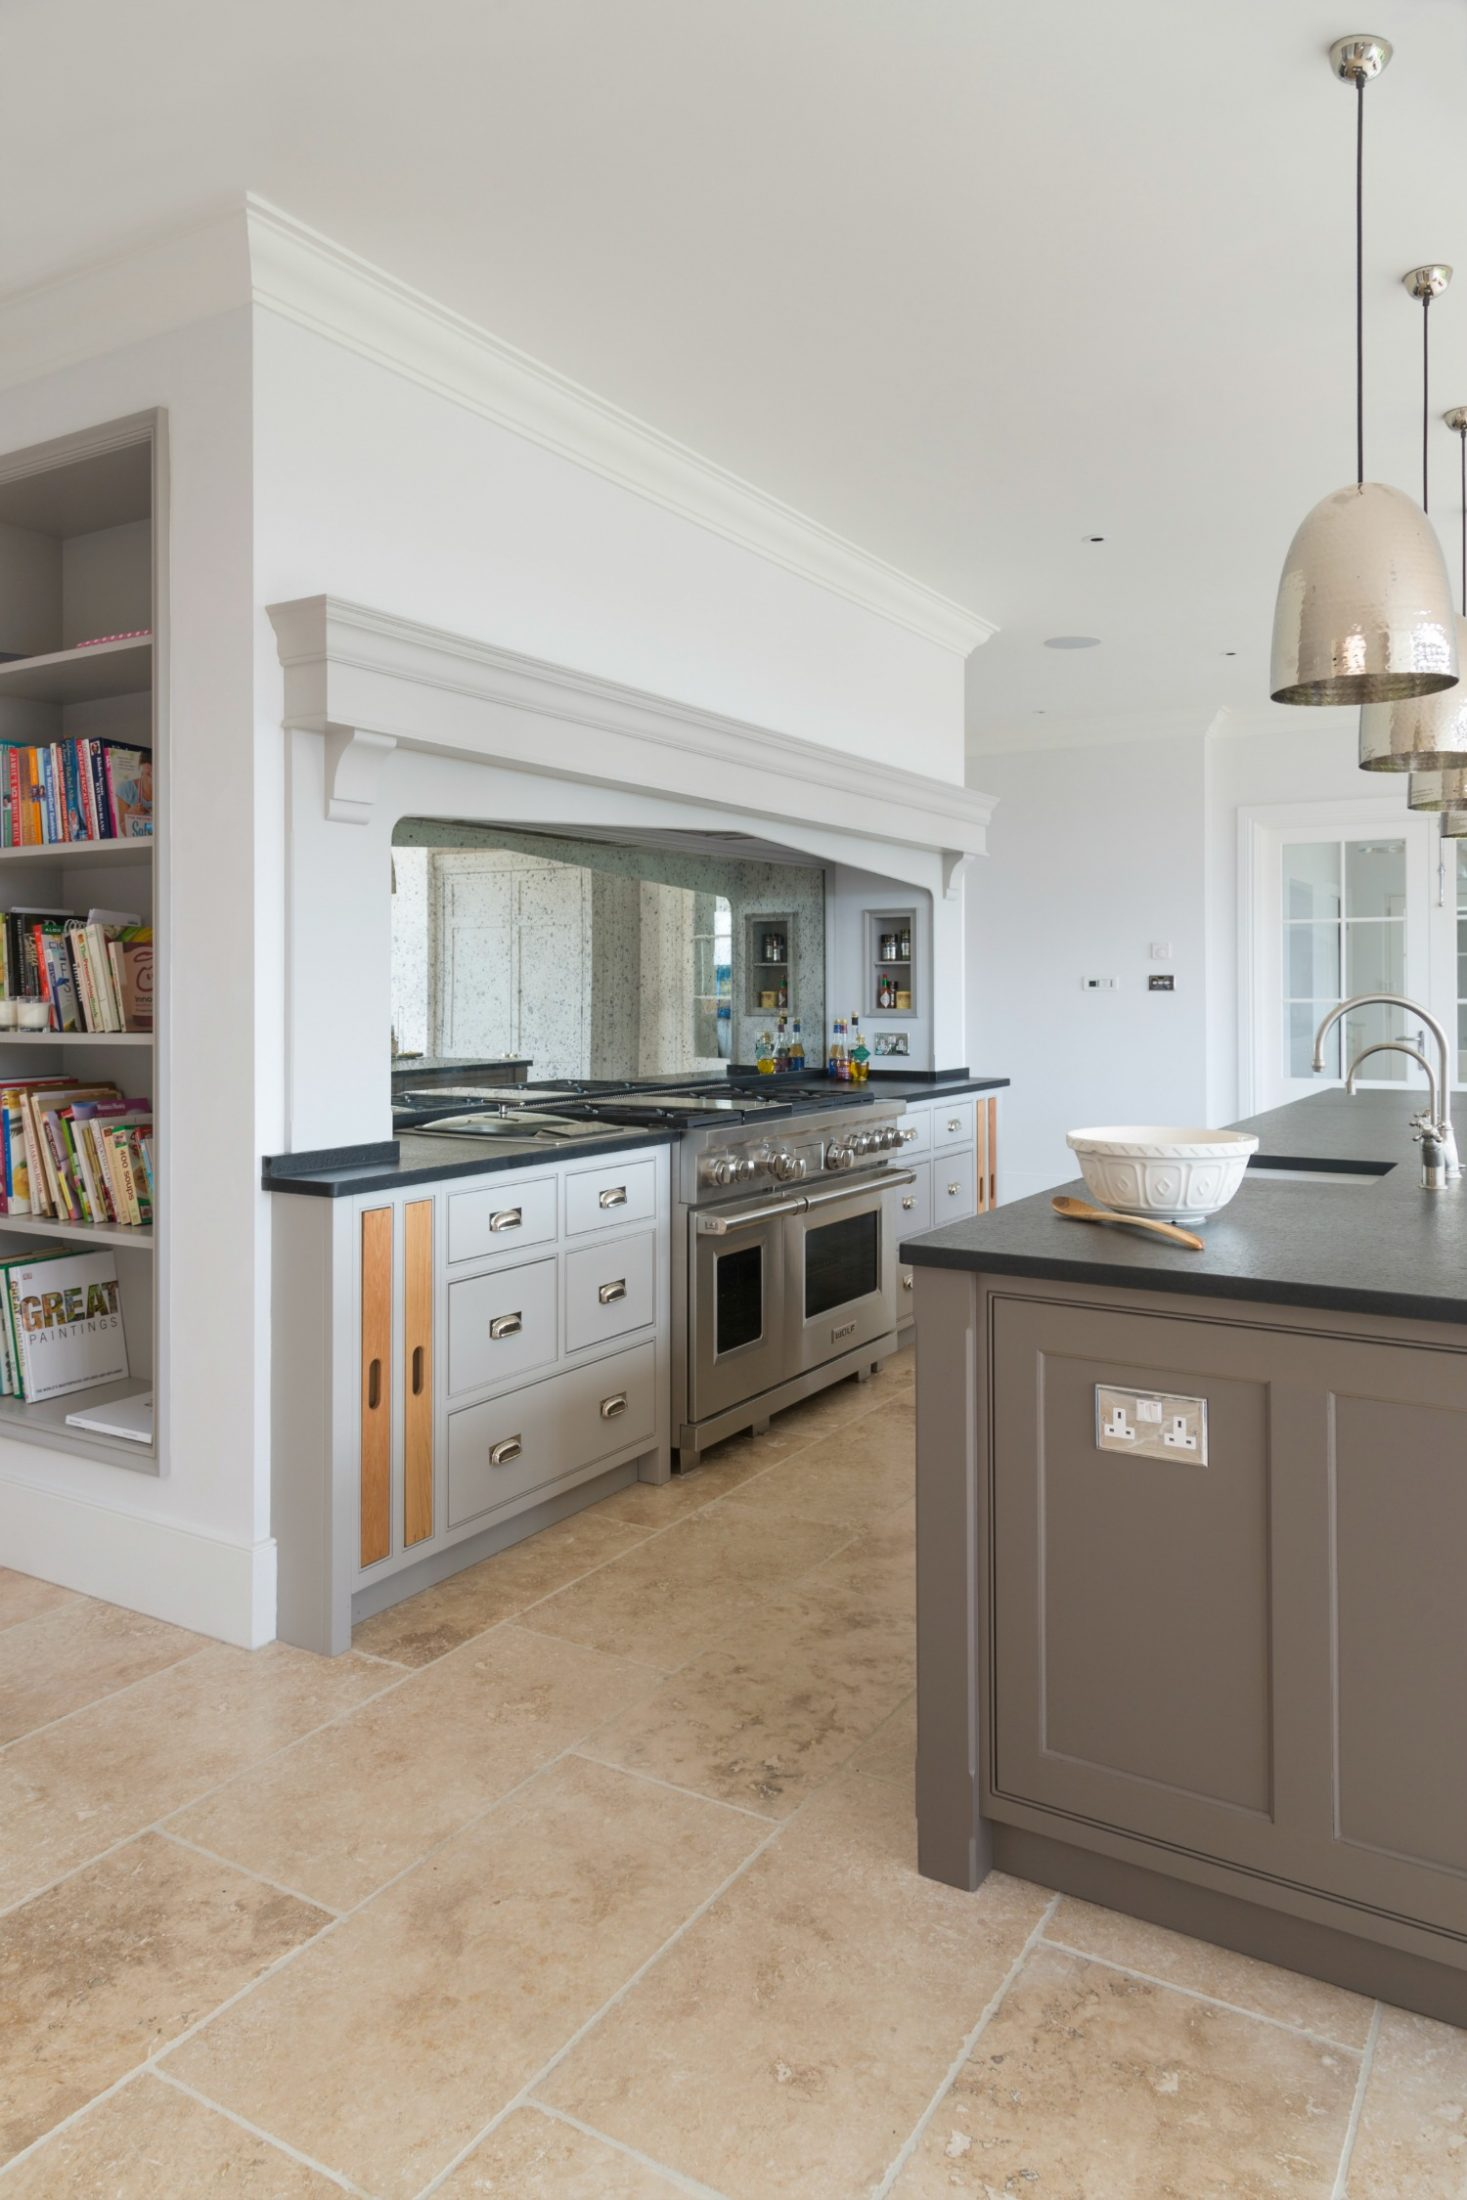 wolf kitchen ranges appliances pittsburgh dual fuel range cooker the original showstopper luxury bespoke humphrey munson ashurst house